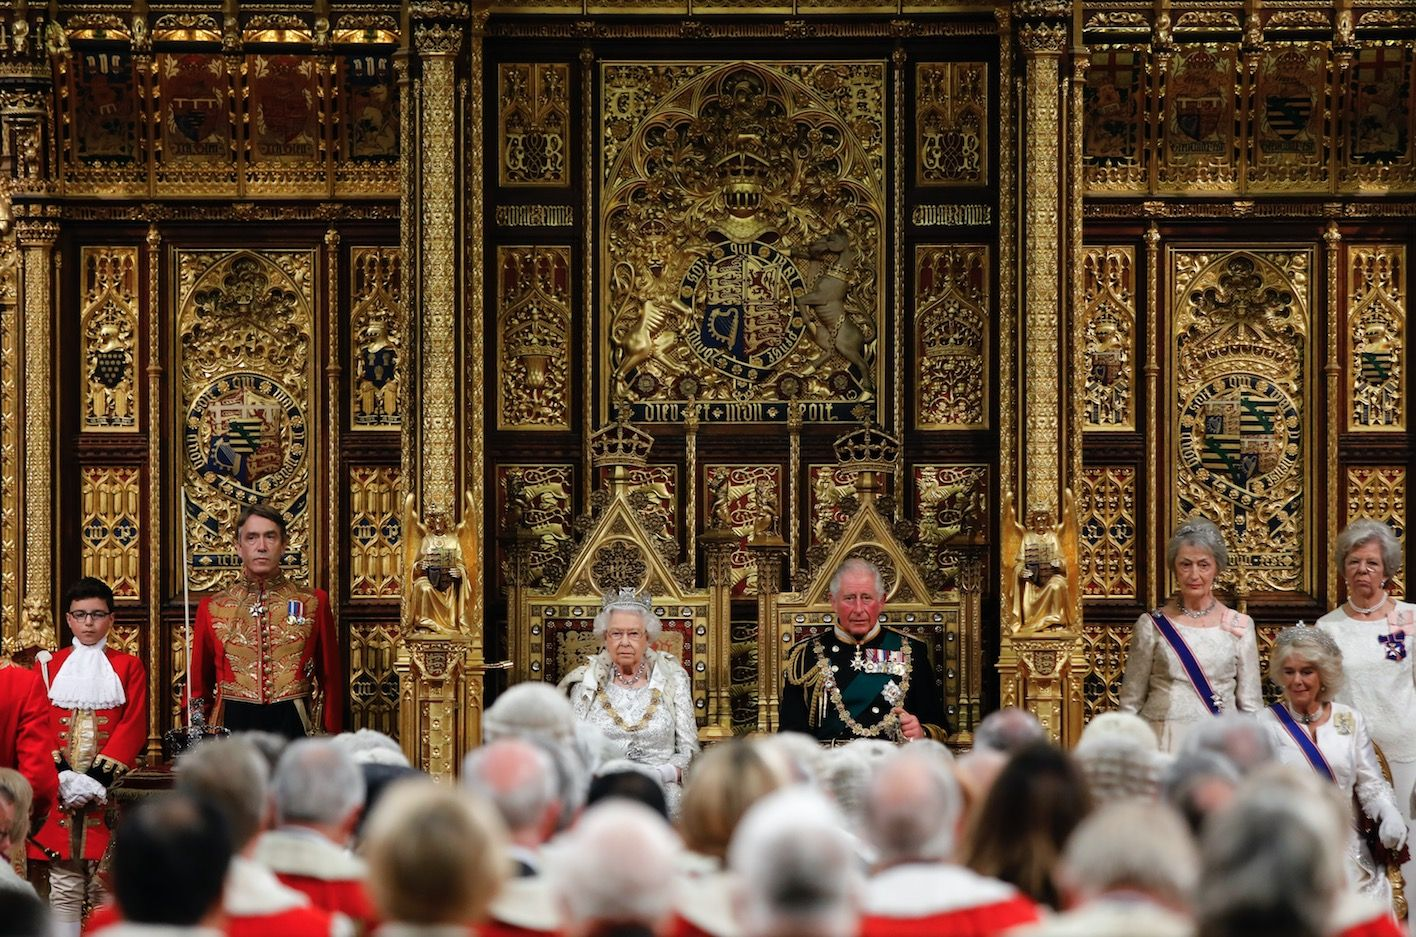 The story behind the Queen's jewels at the State Opening of Parliament